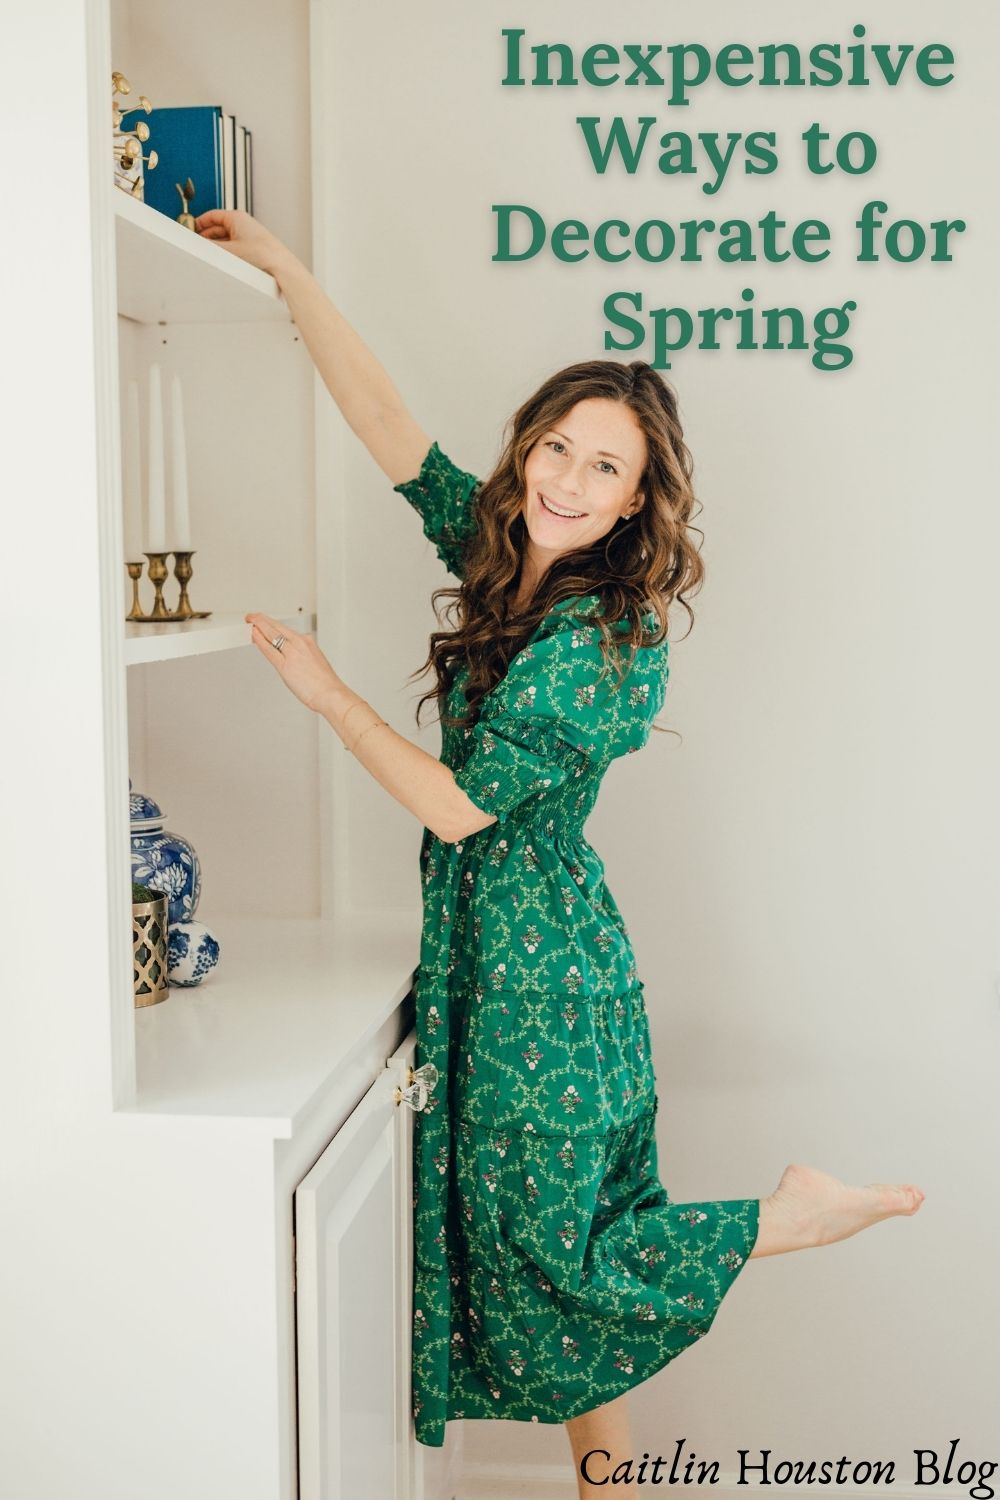 Inexpensive Ways to Decorate for Spring